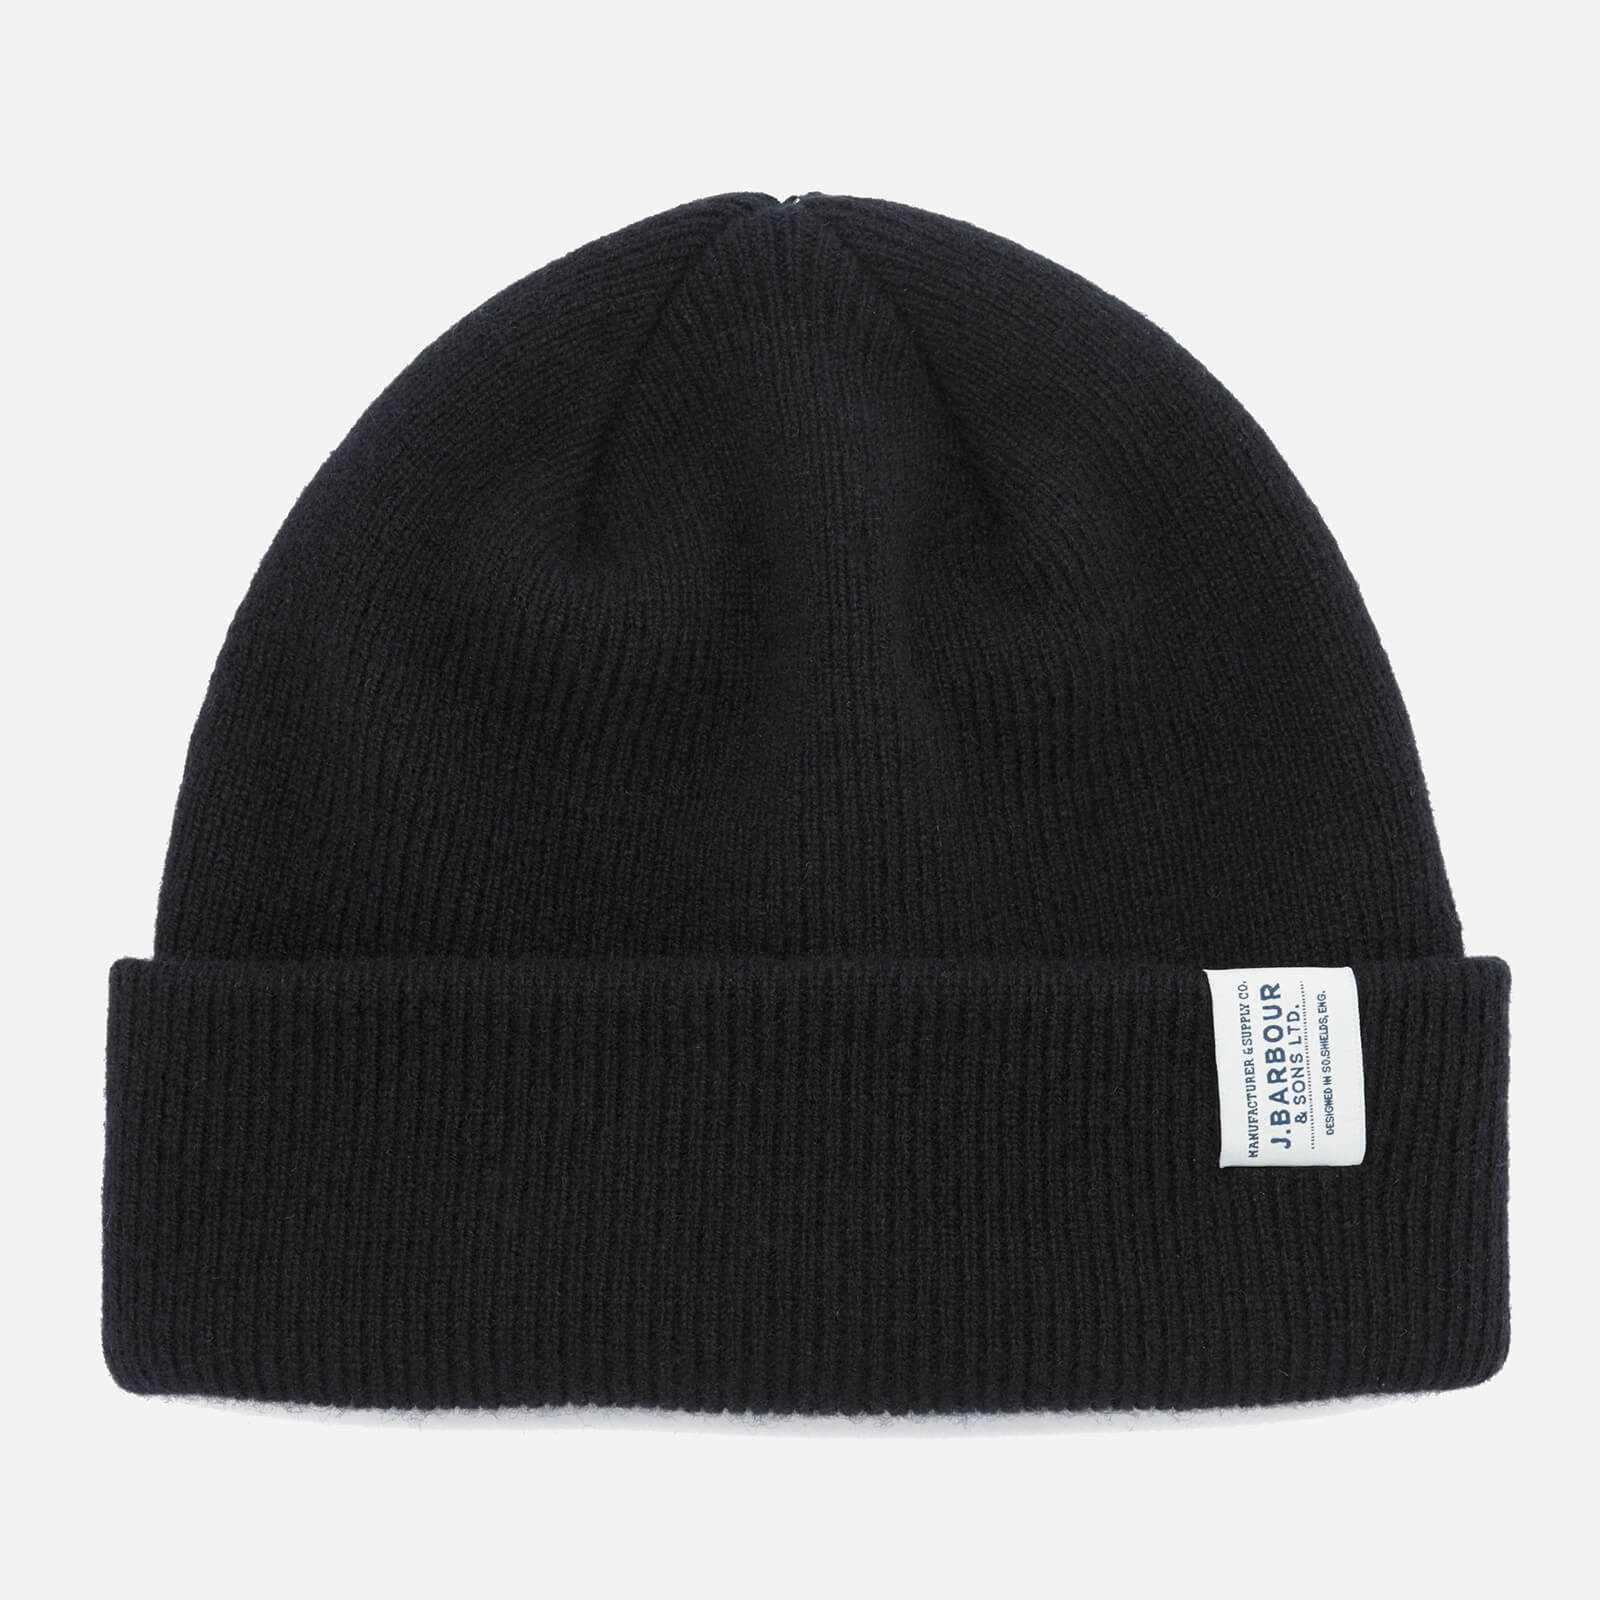 1318a94cc3b Barbour Men s Lambswool Watch Cap Beanie - Black Mens Accessories ...